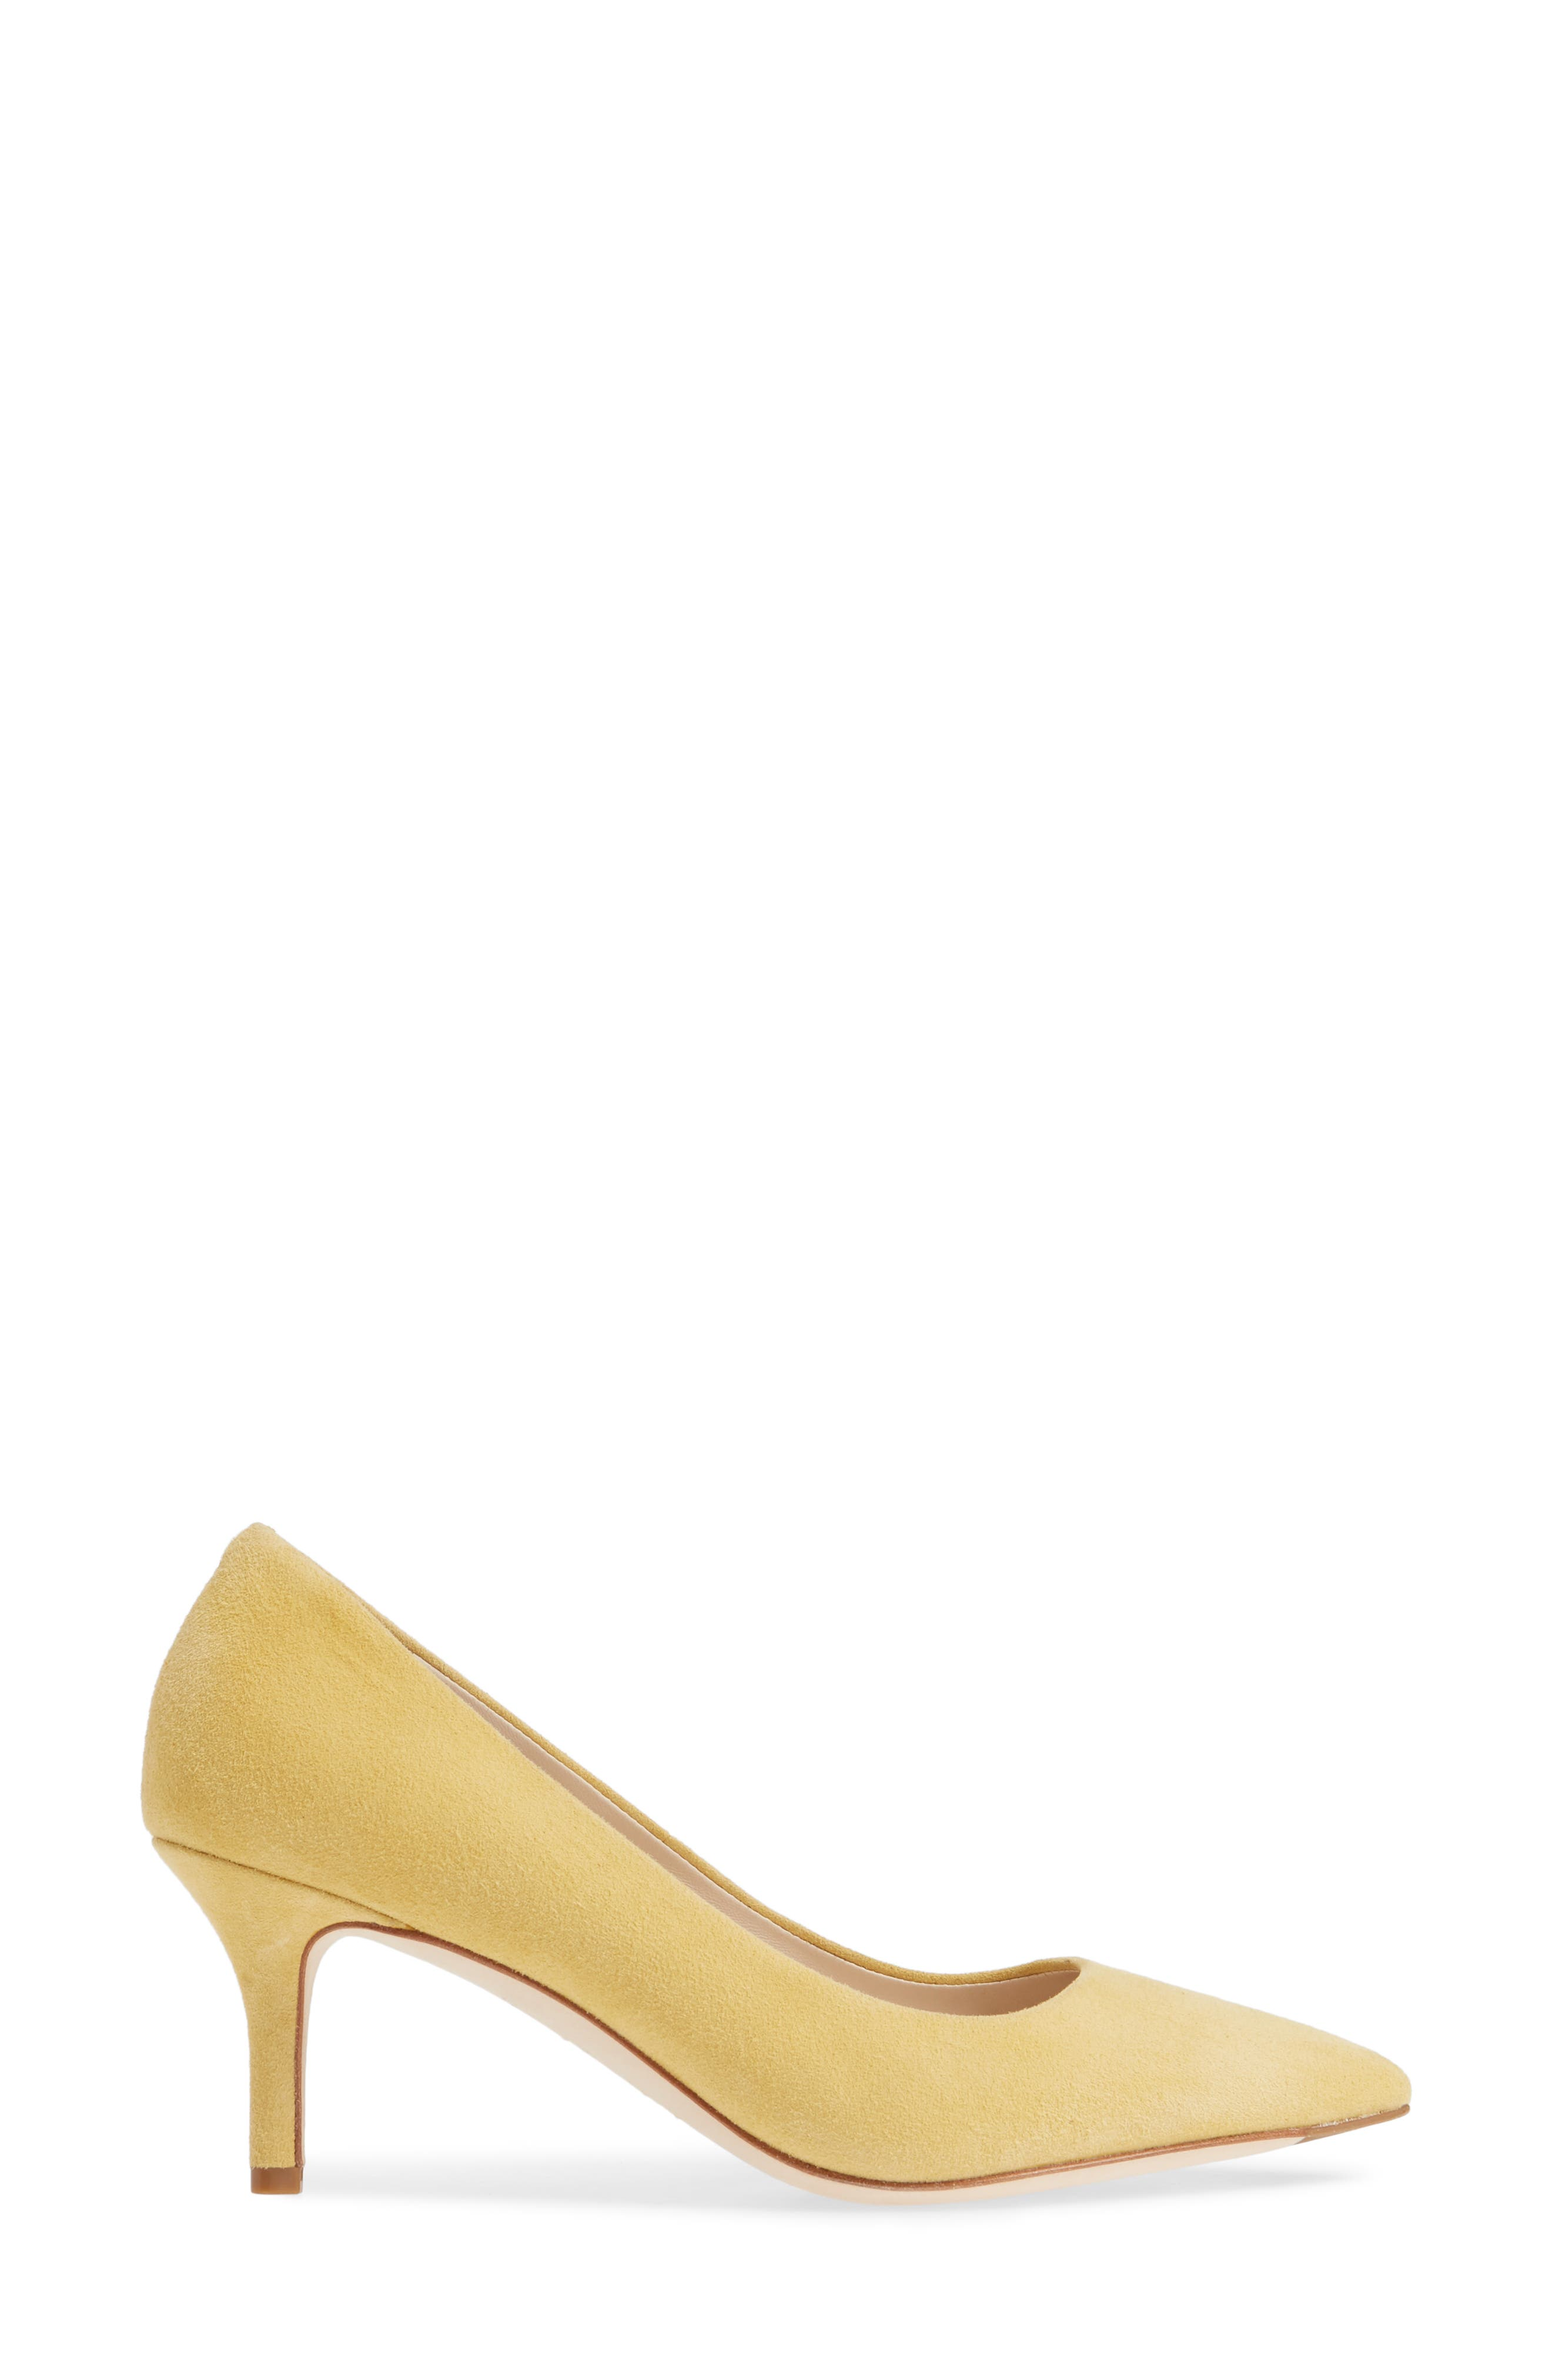 COLE HAAN, Vesta Pointy Toe Pump, Alternate thumbnail 3, color, SUNSET GOLD SUEDE